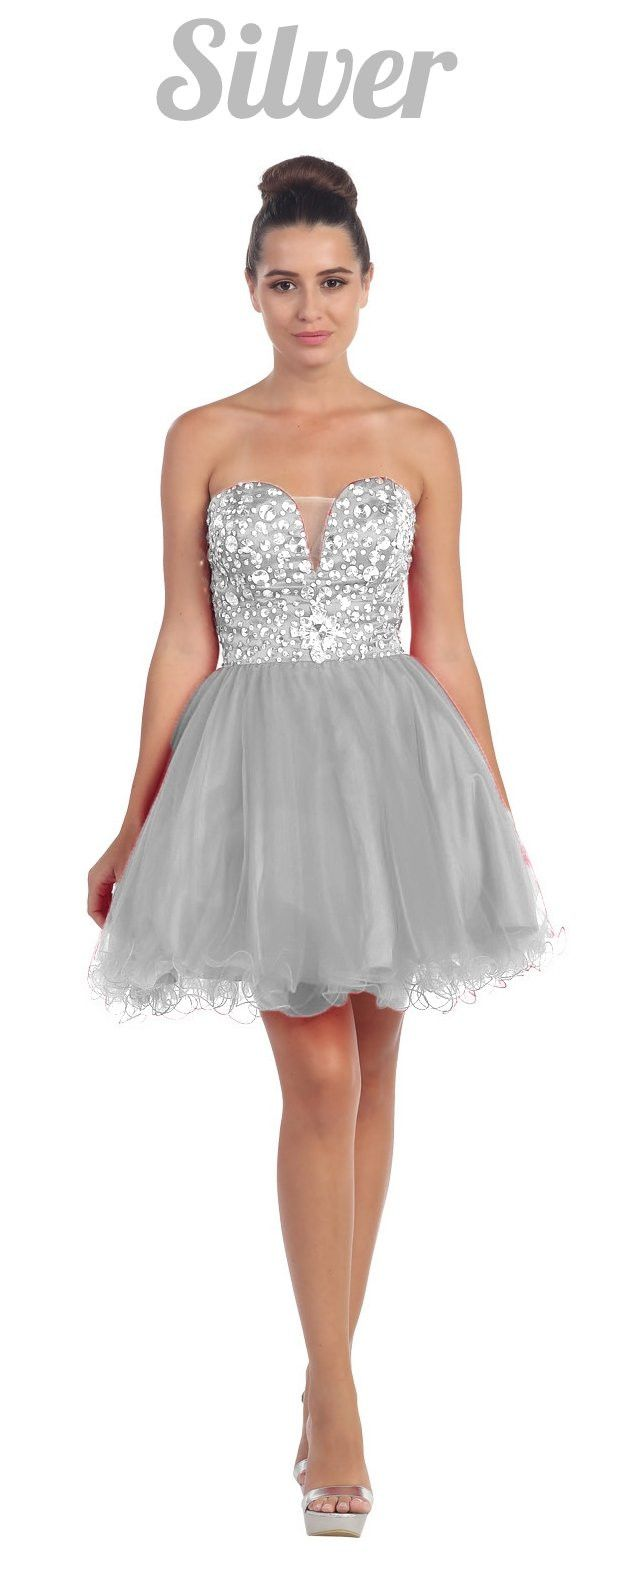 Tulle Poofy Skirt A Line Red Homecoming Dress Strapless | Products